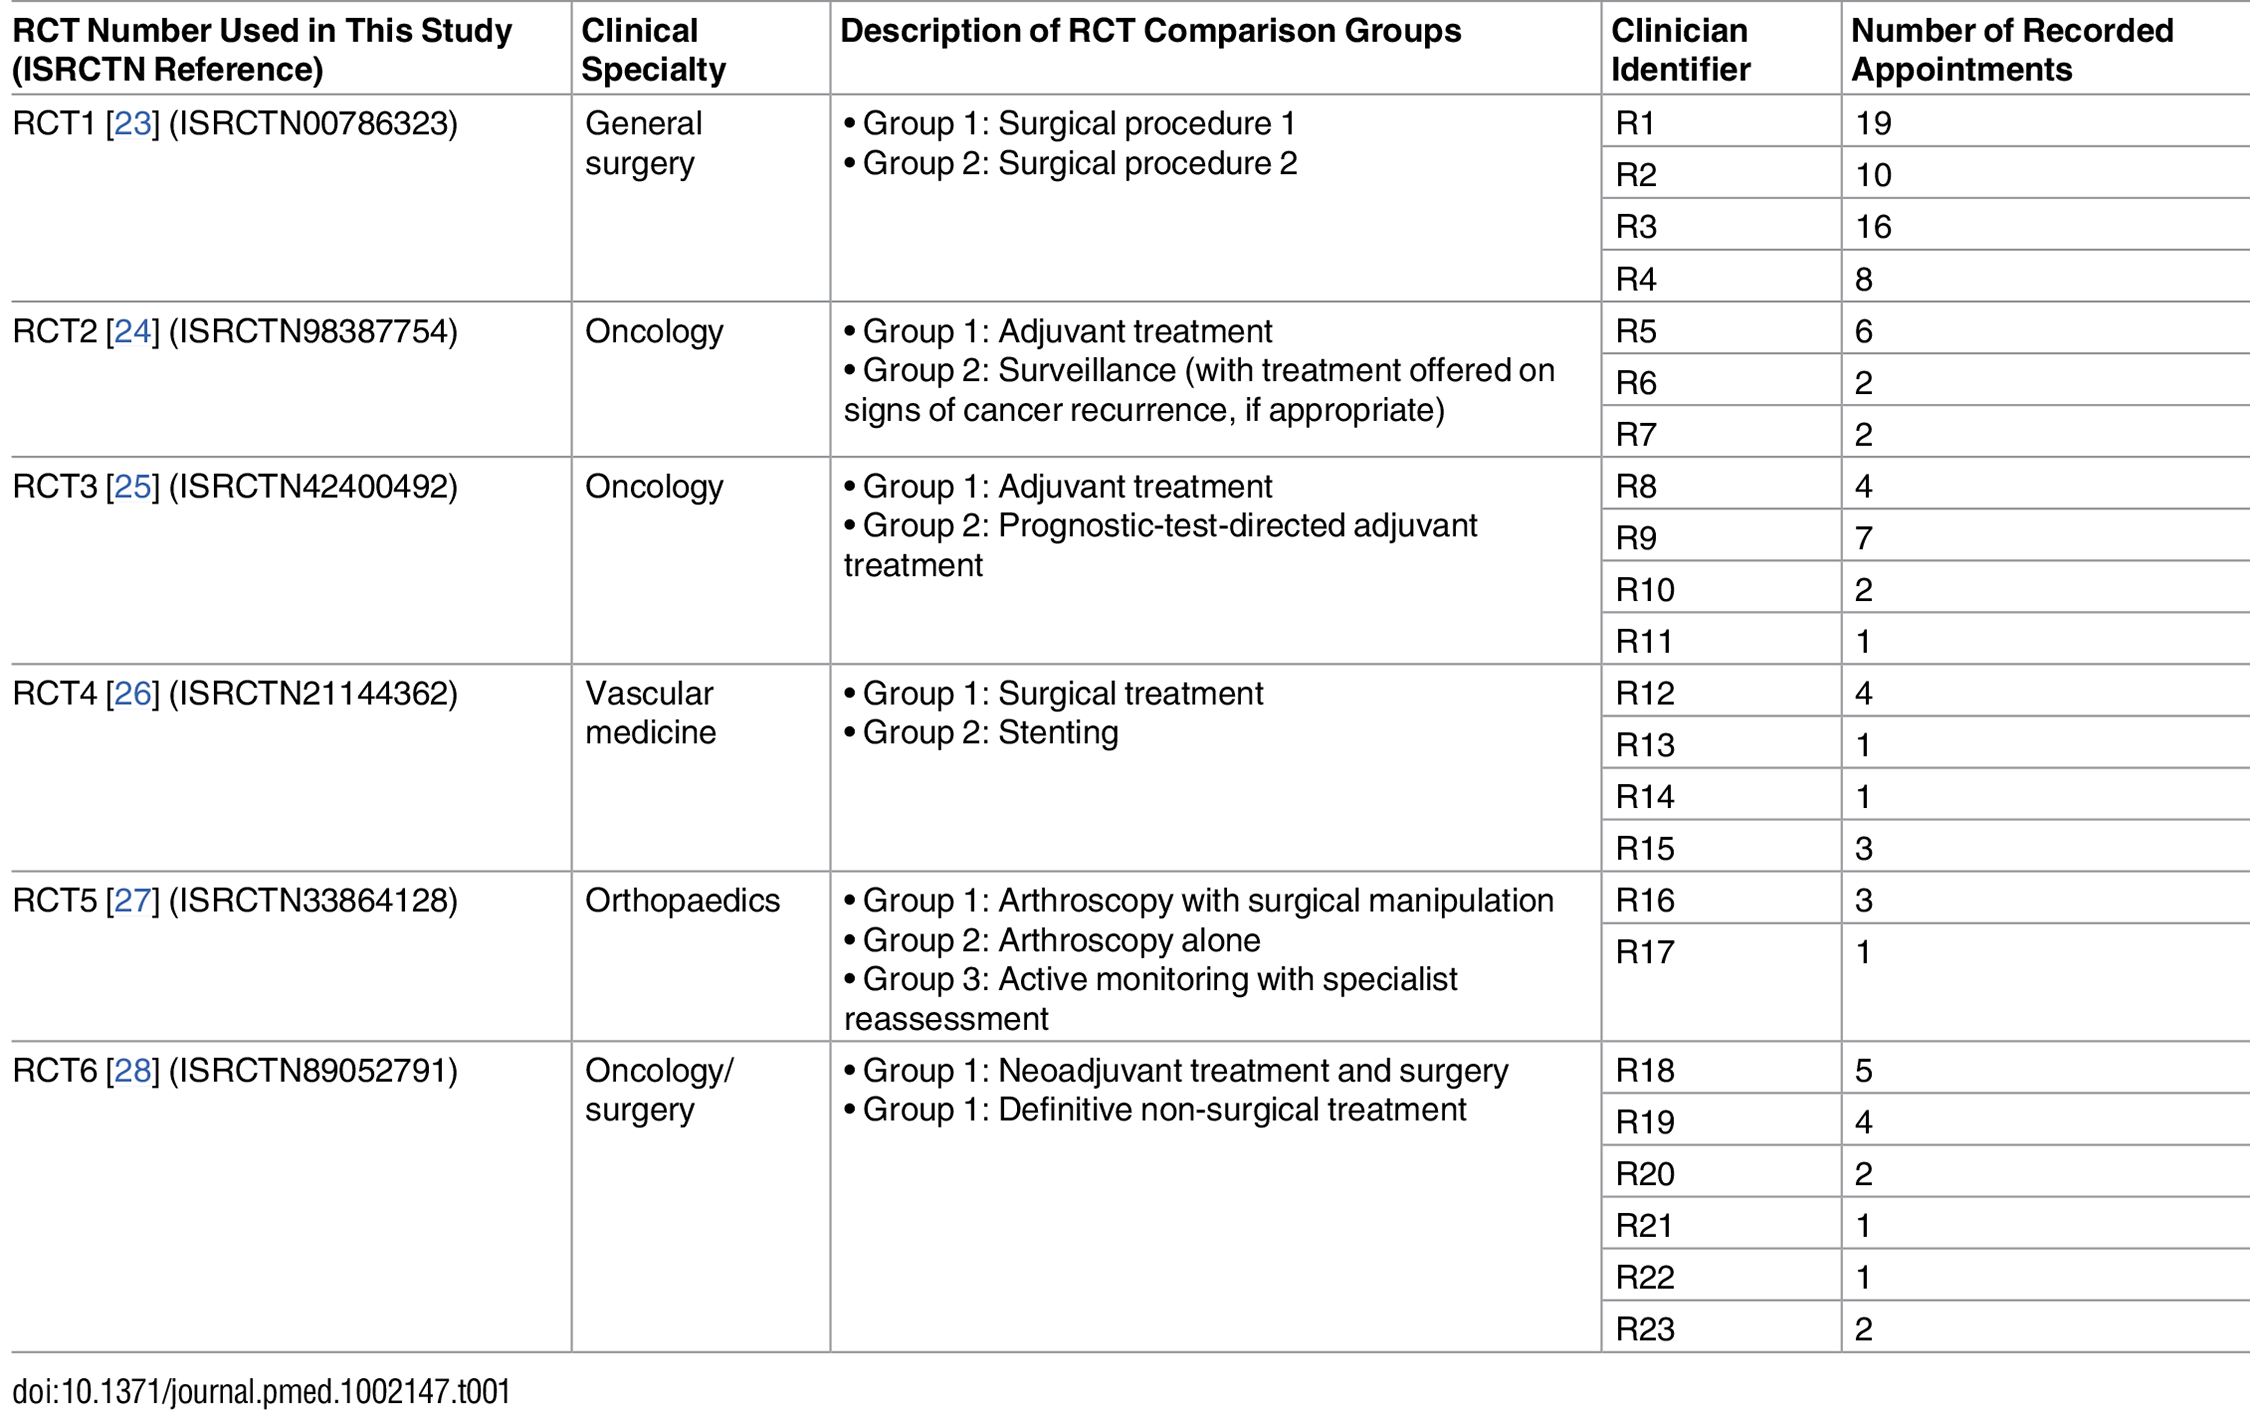 RCT details and associated number of appointments recorded (shown by participating clinician).